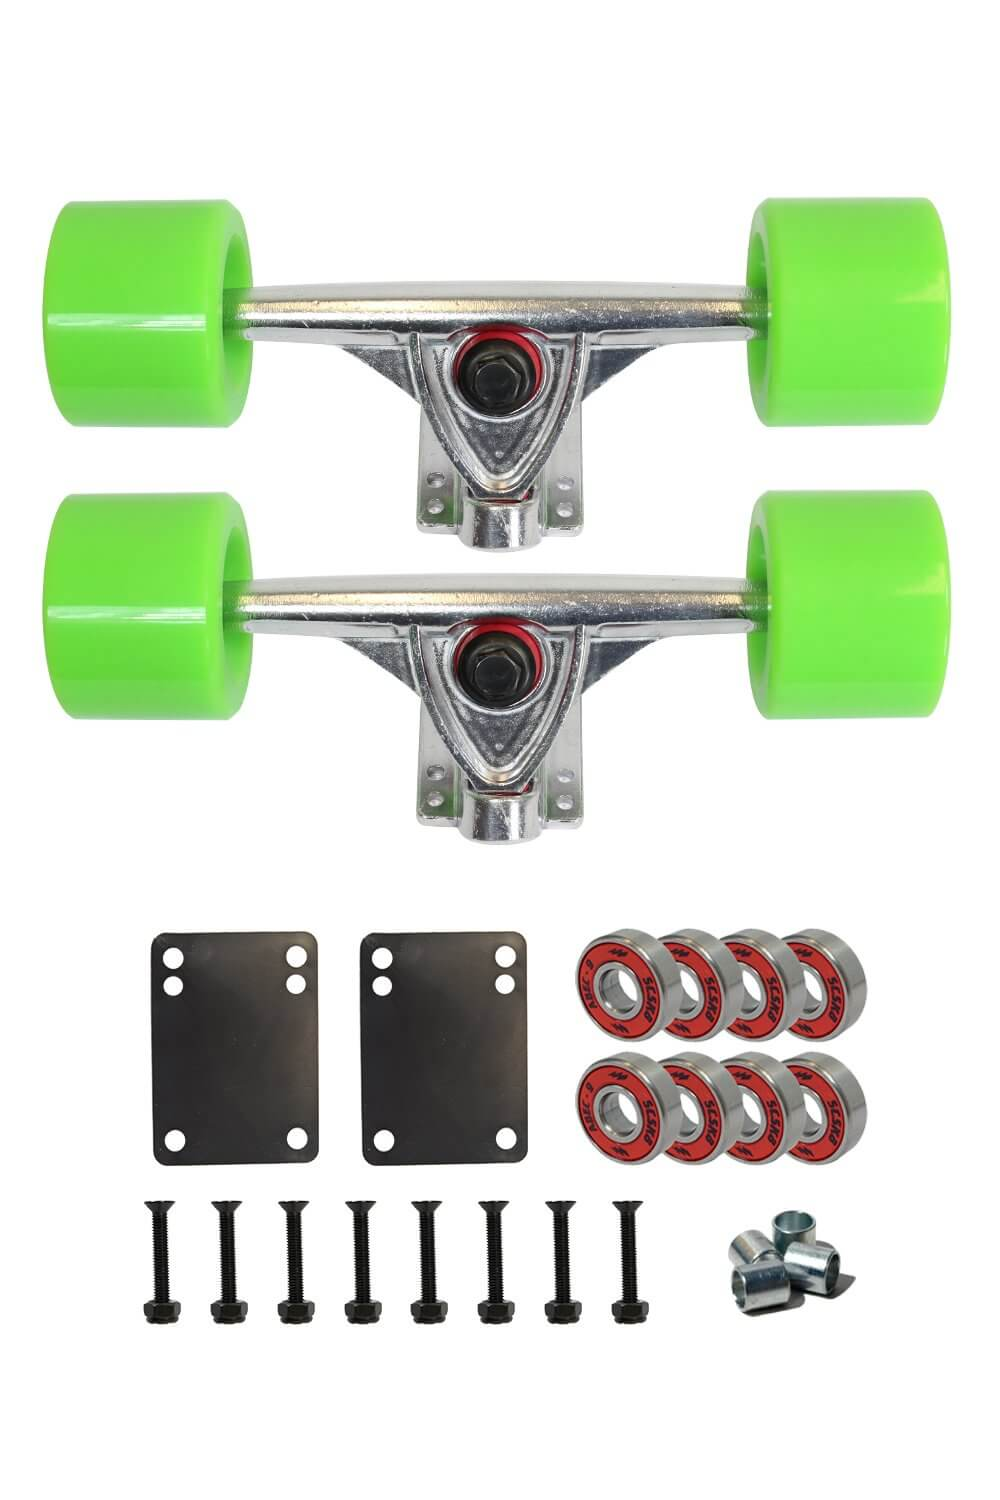 SCSK8 best for all type of longboard